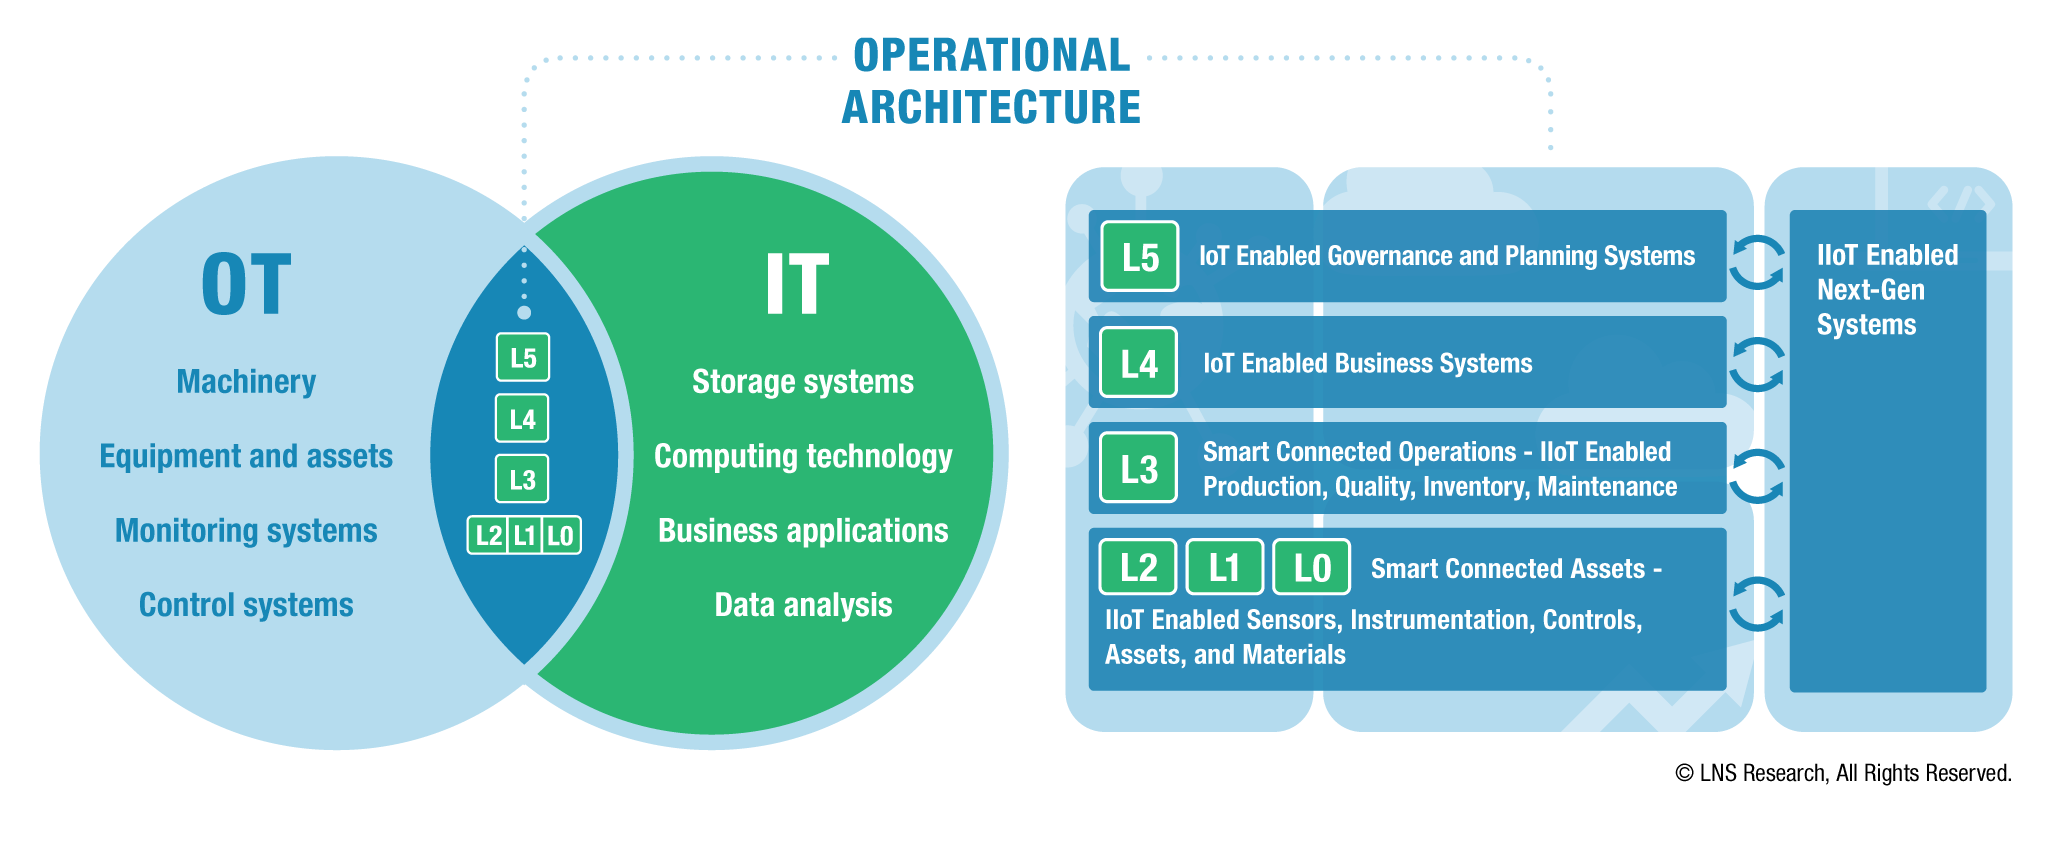 Operational Architecture - IT-OT Convergence.png